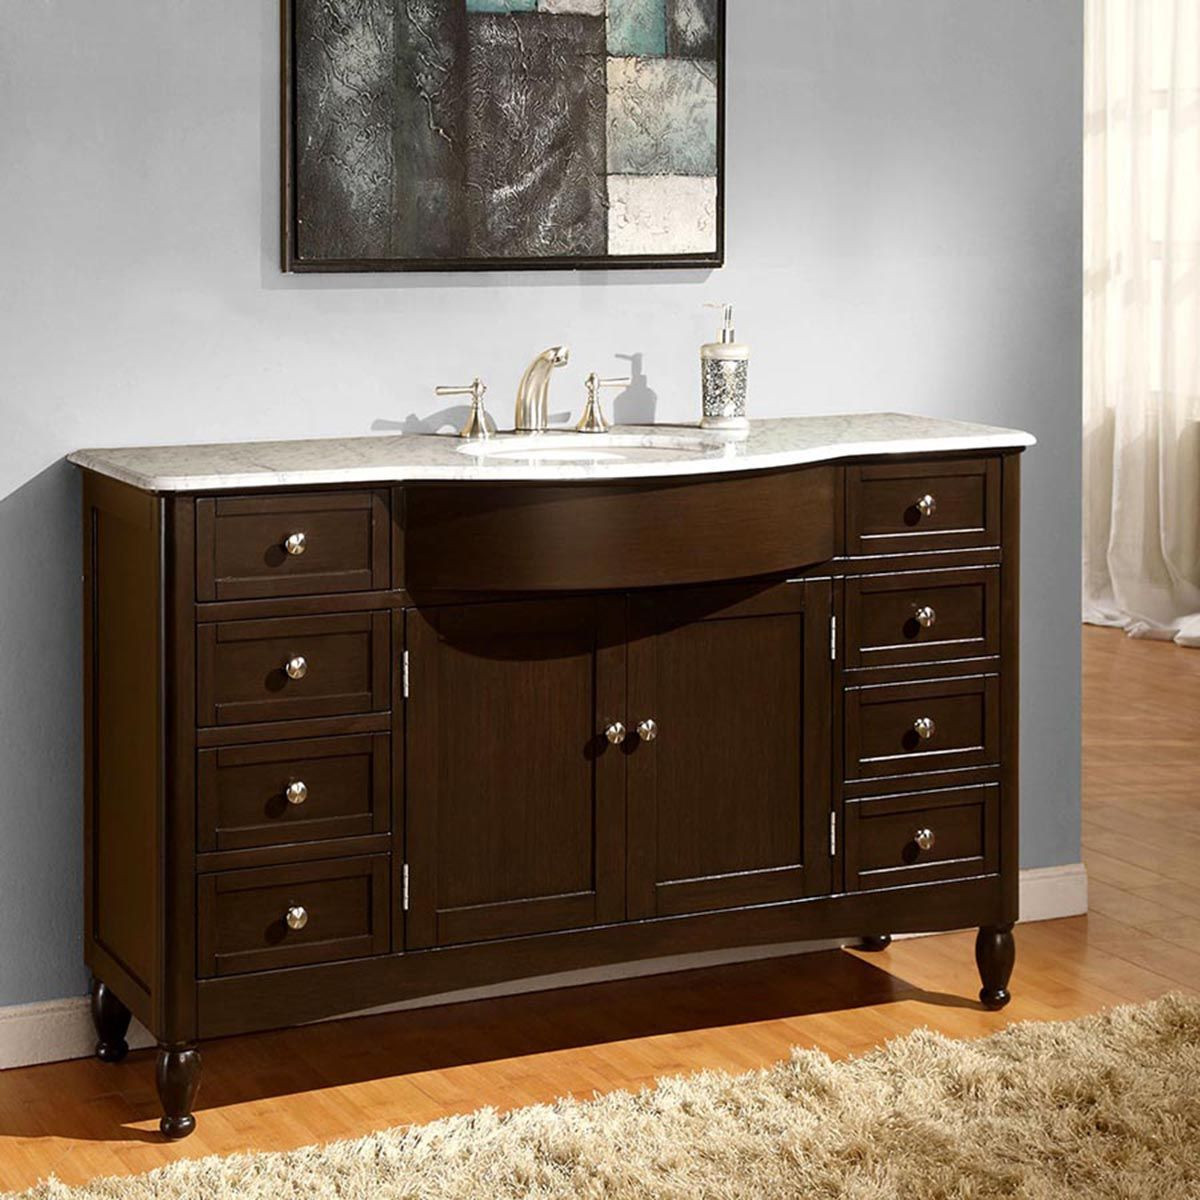 "Dresser Bathroom Vanity  58"" Modern Single Bathroom Vanity Espresso"